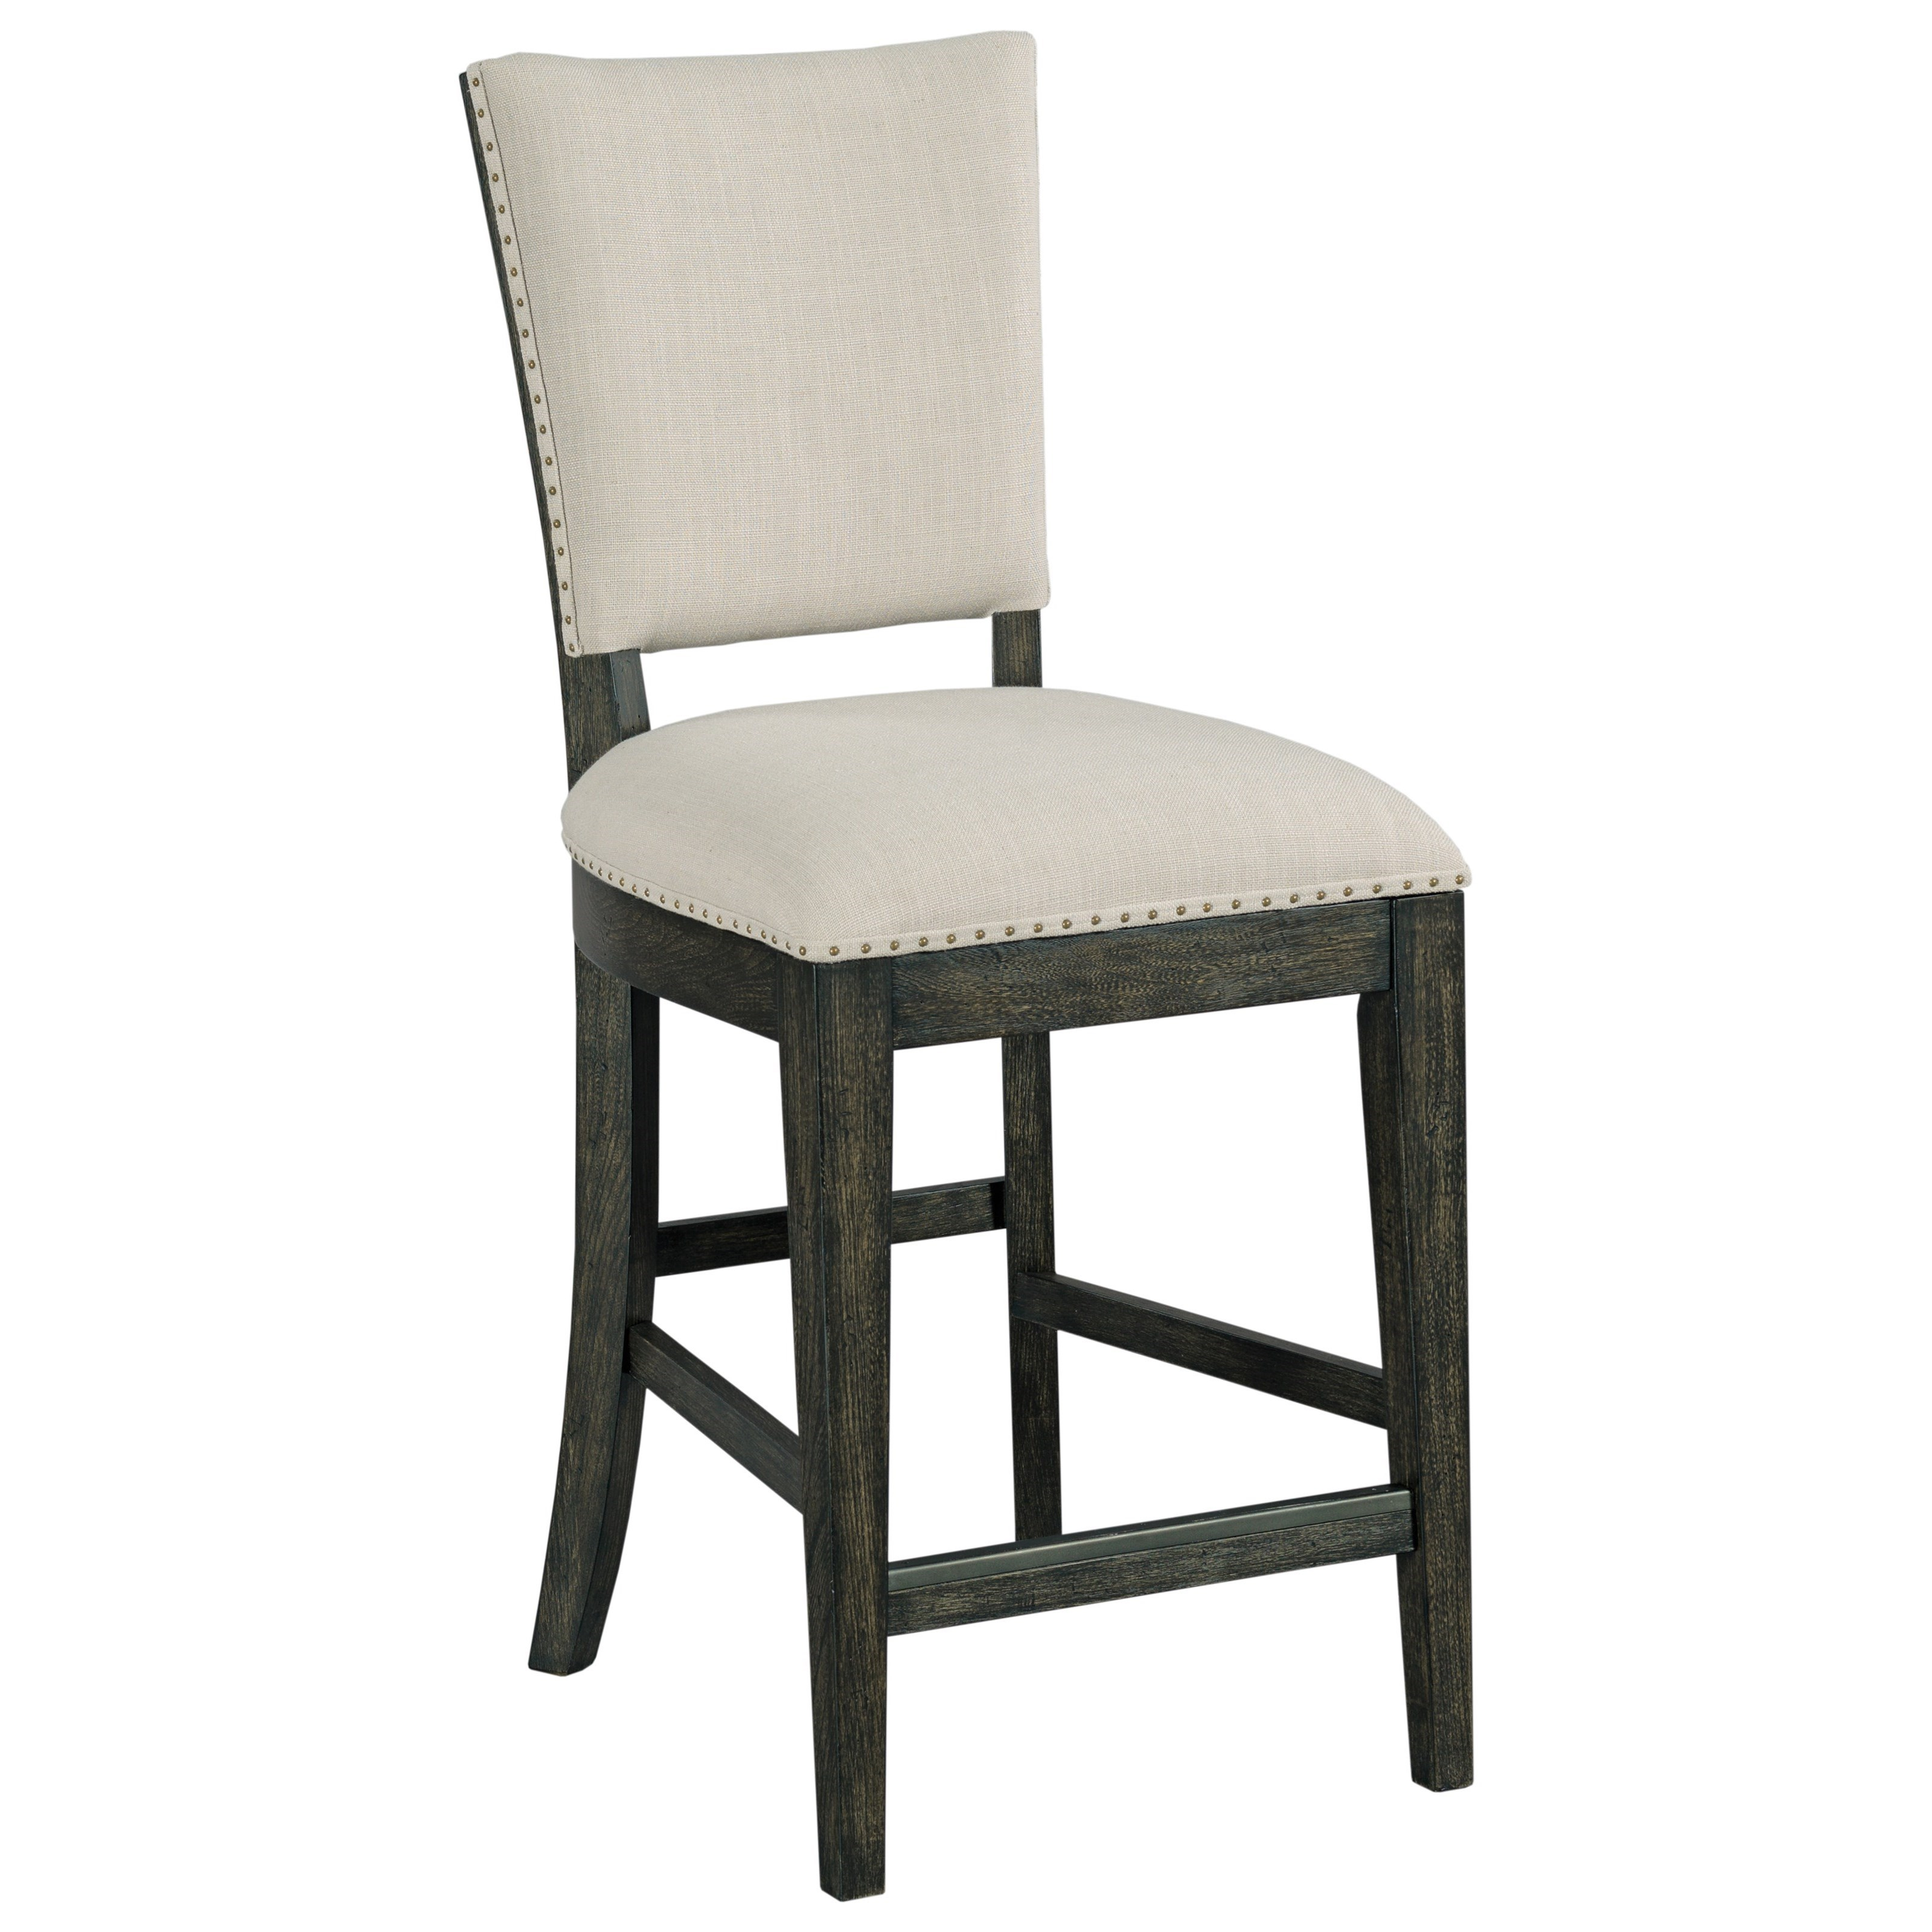 Plank Road Kimler Counter Height Chair                  at Stoney Creek Furniture